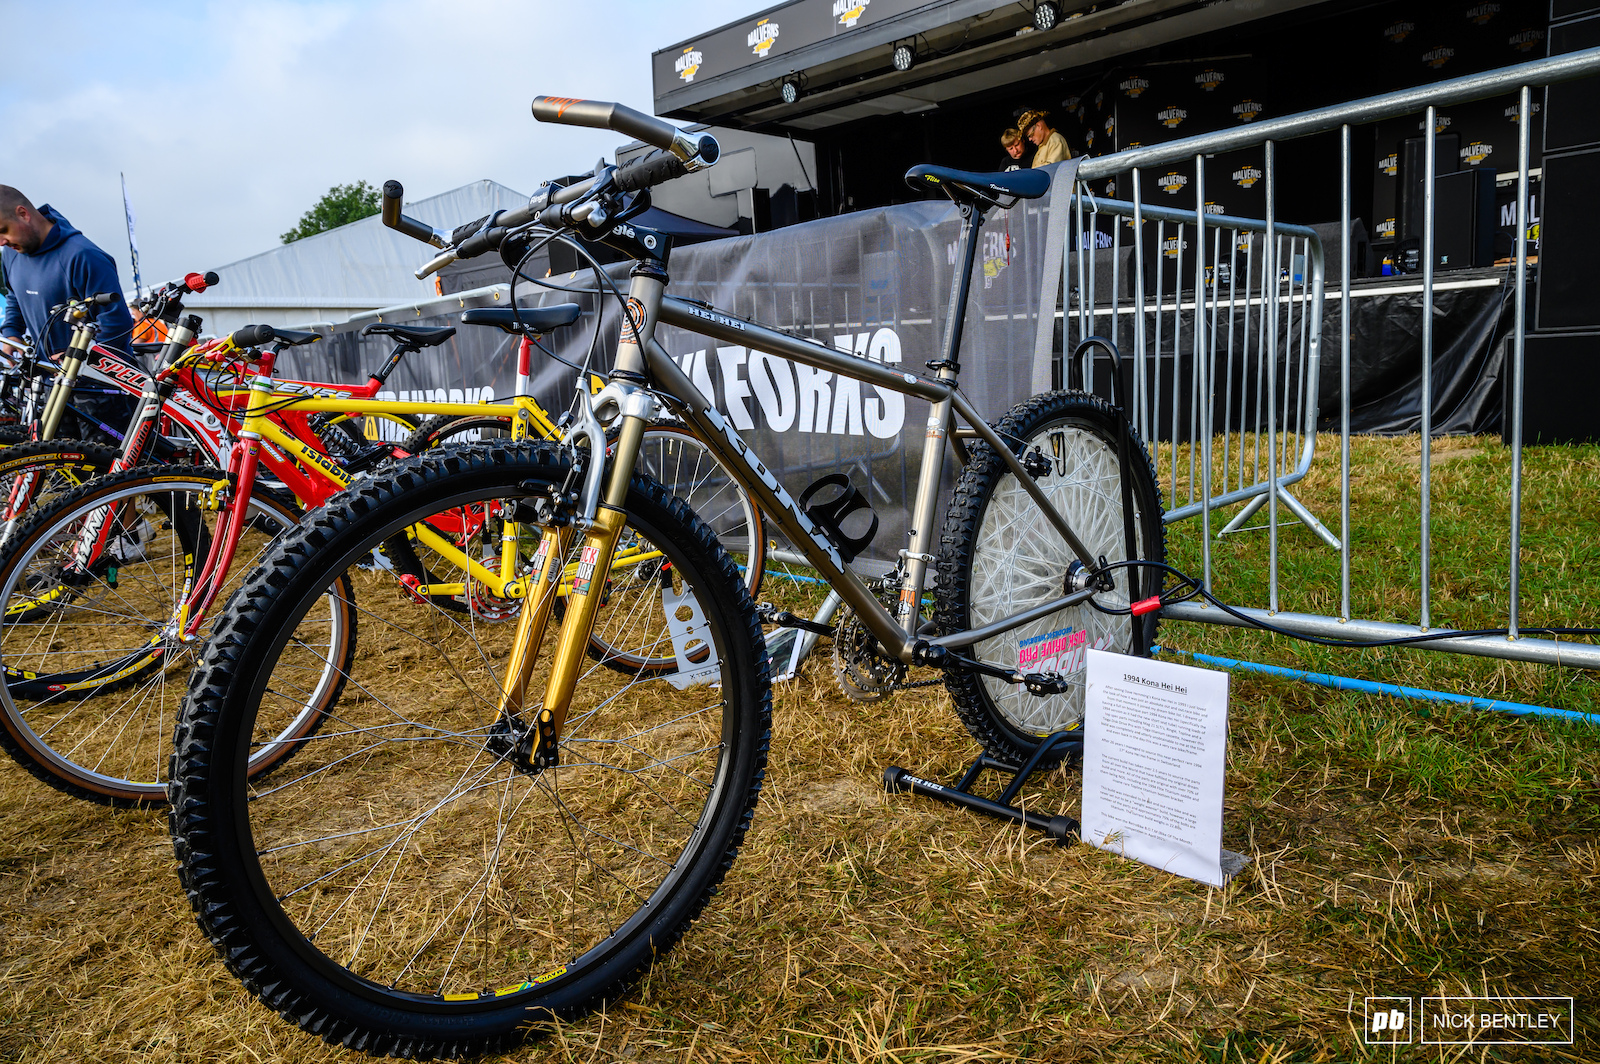 This Kona looked like it had just come out of the factory but took 2 and a half years to source and build took home second today